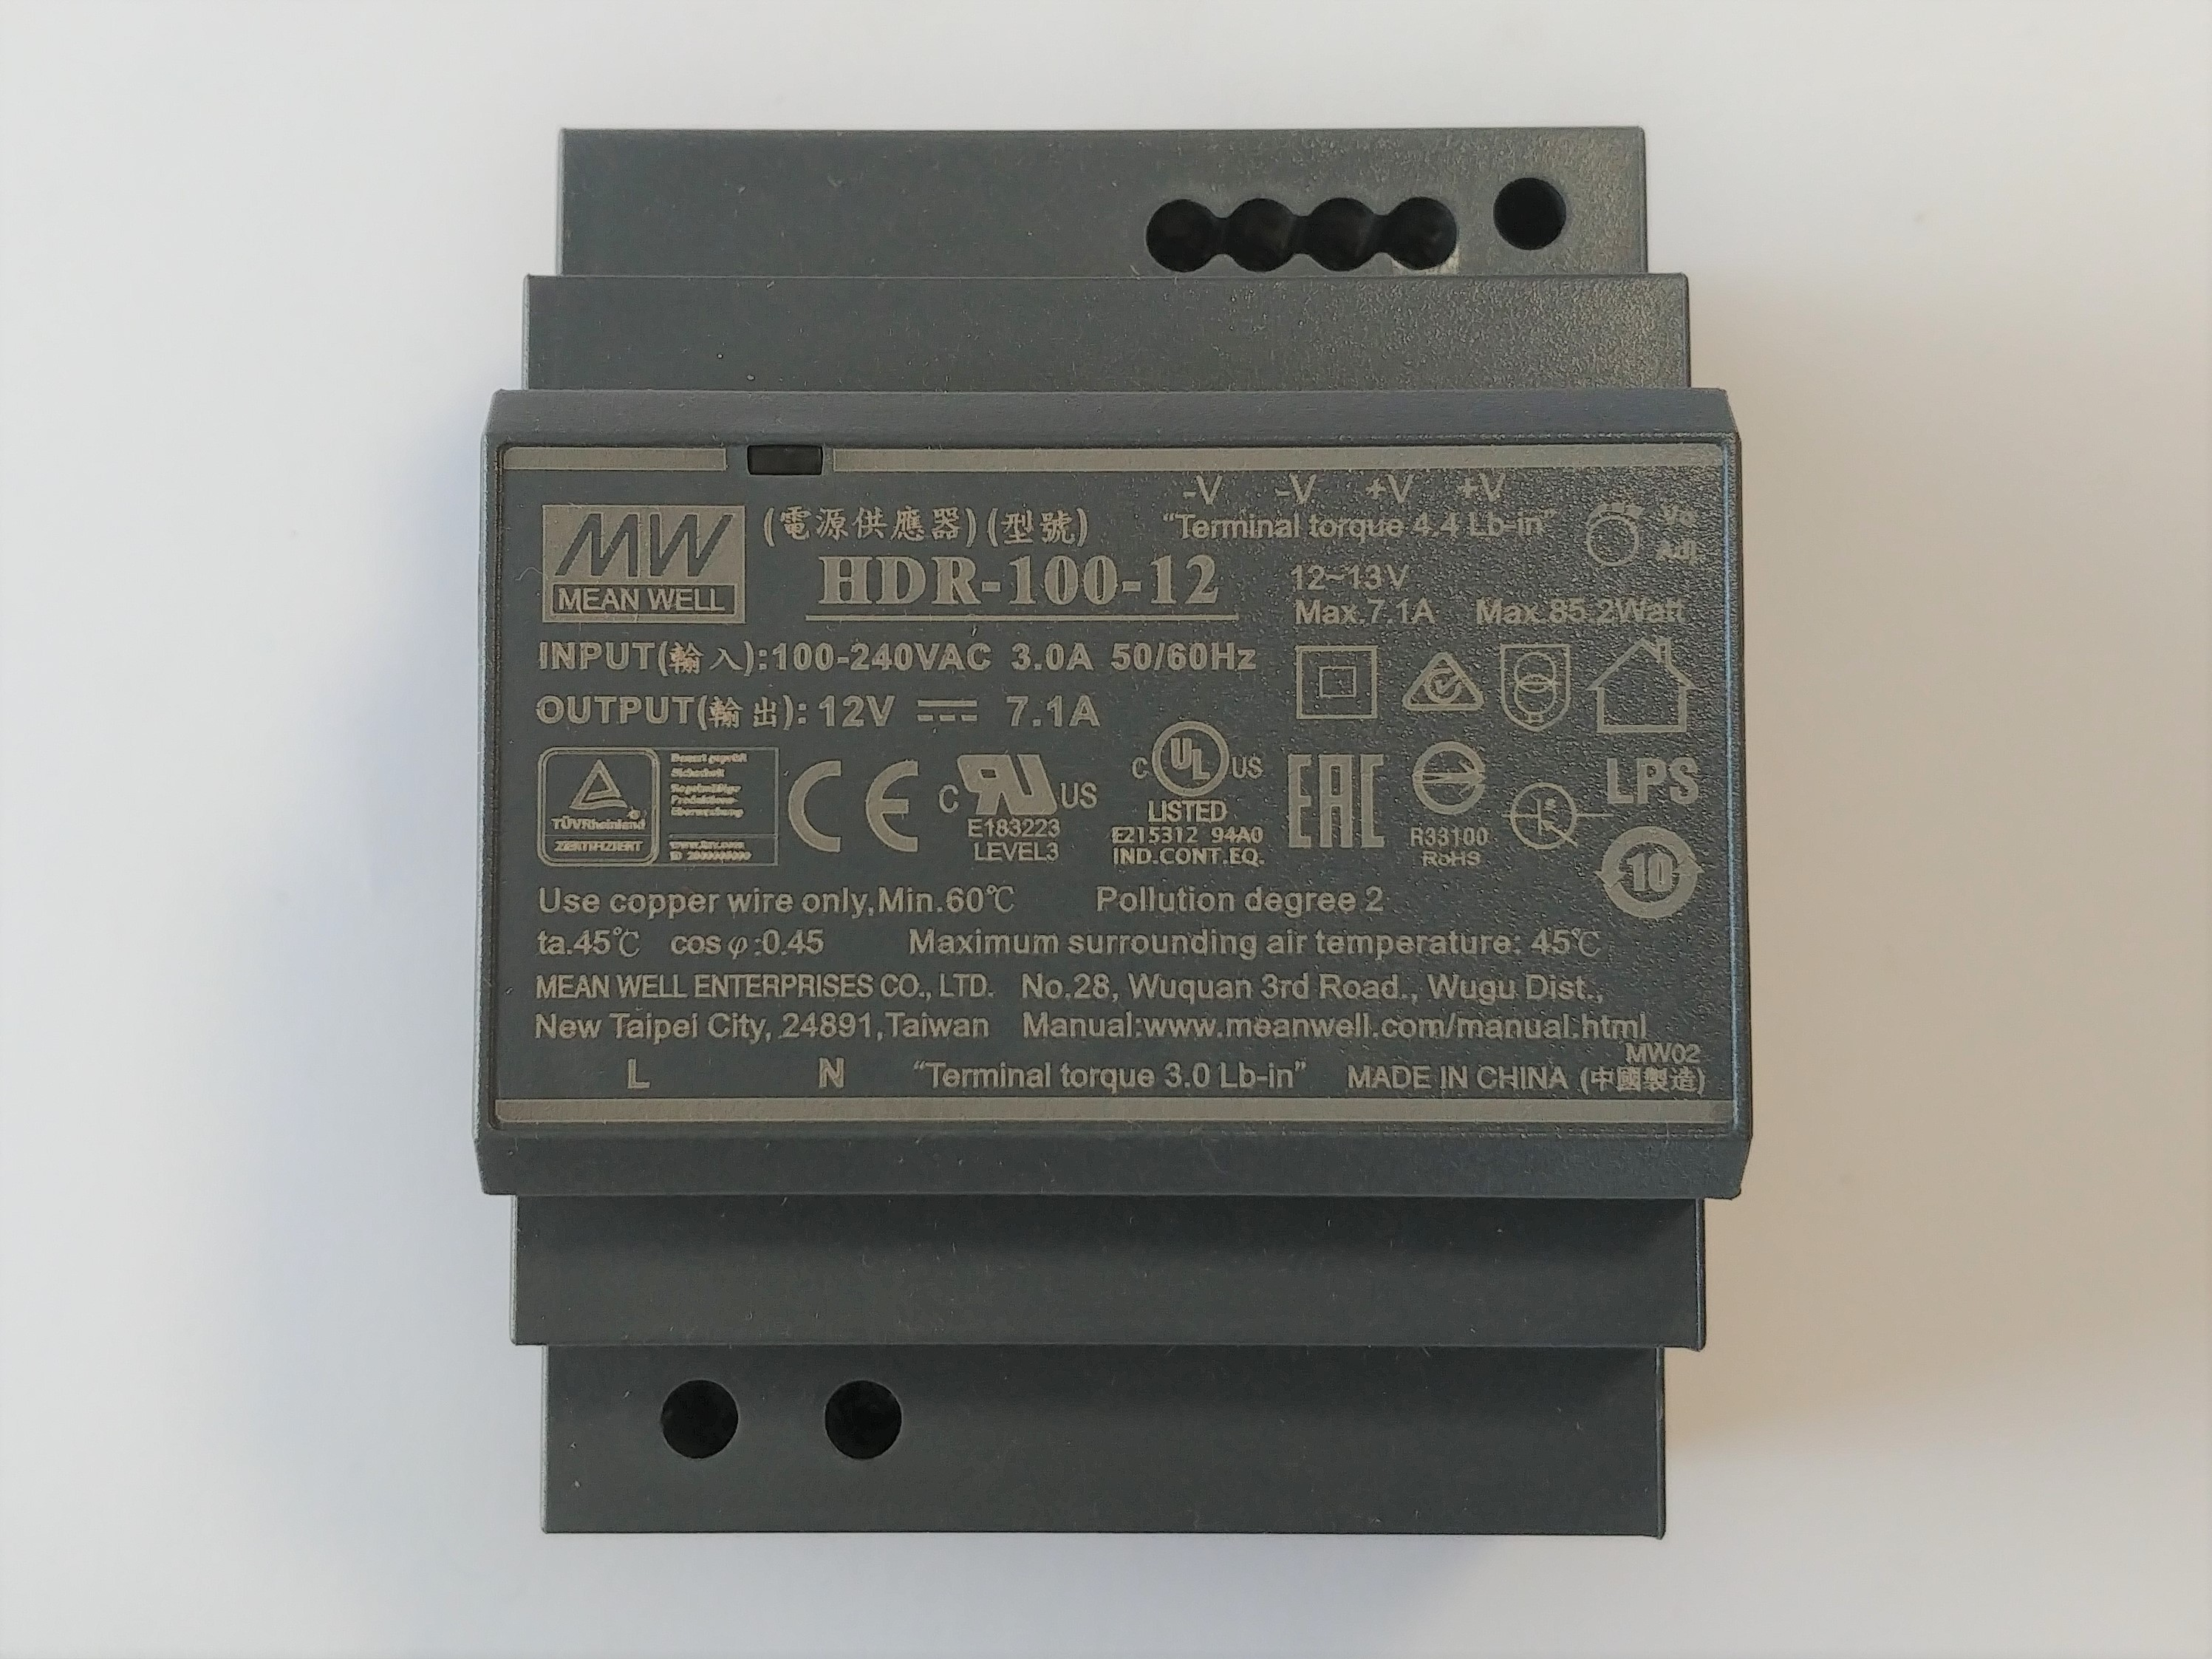 Mean Well HDR-100-12 DIN Rail Power Supply - 12V - 7.1A